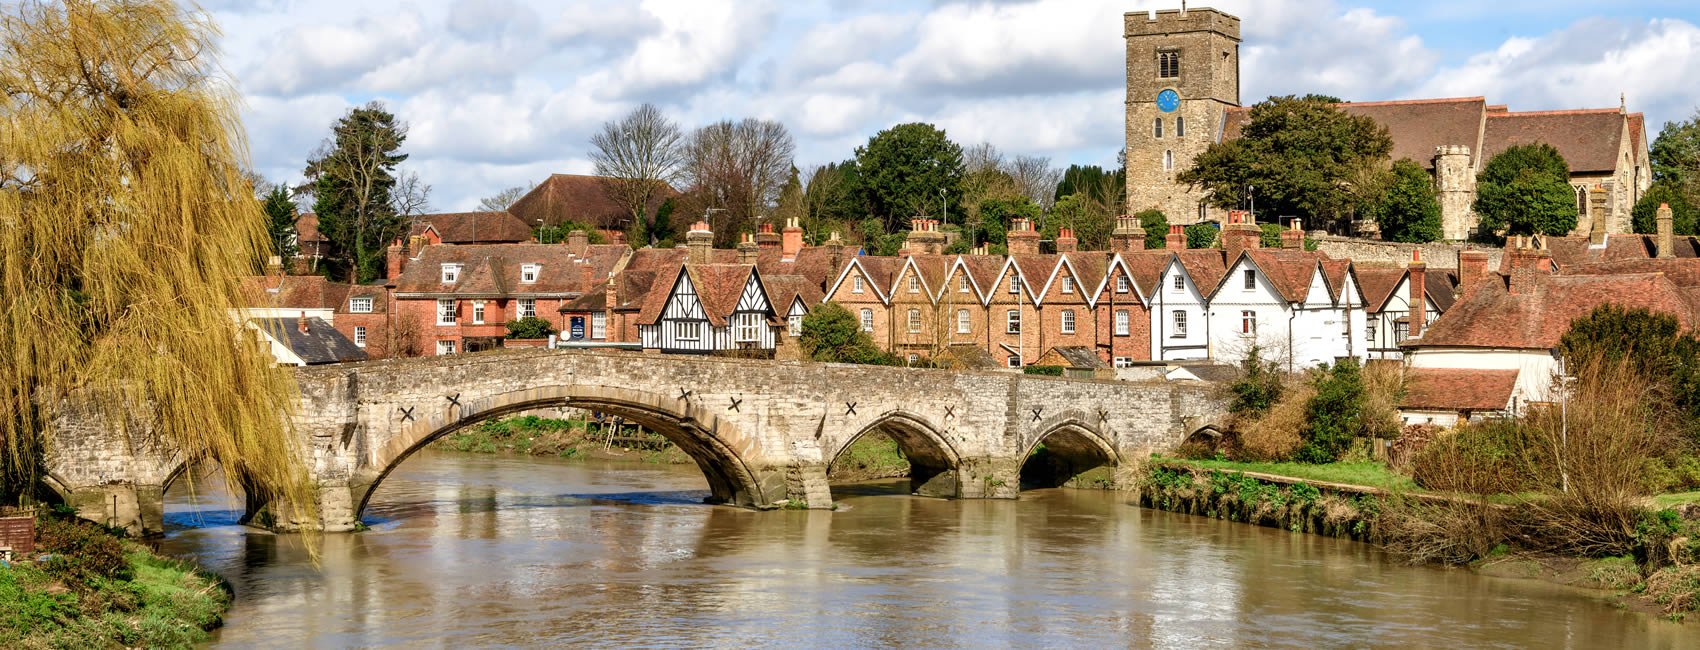 Aylesford town centre and bridge